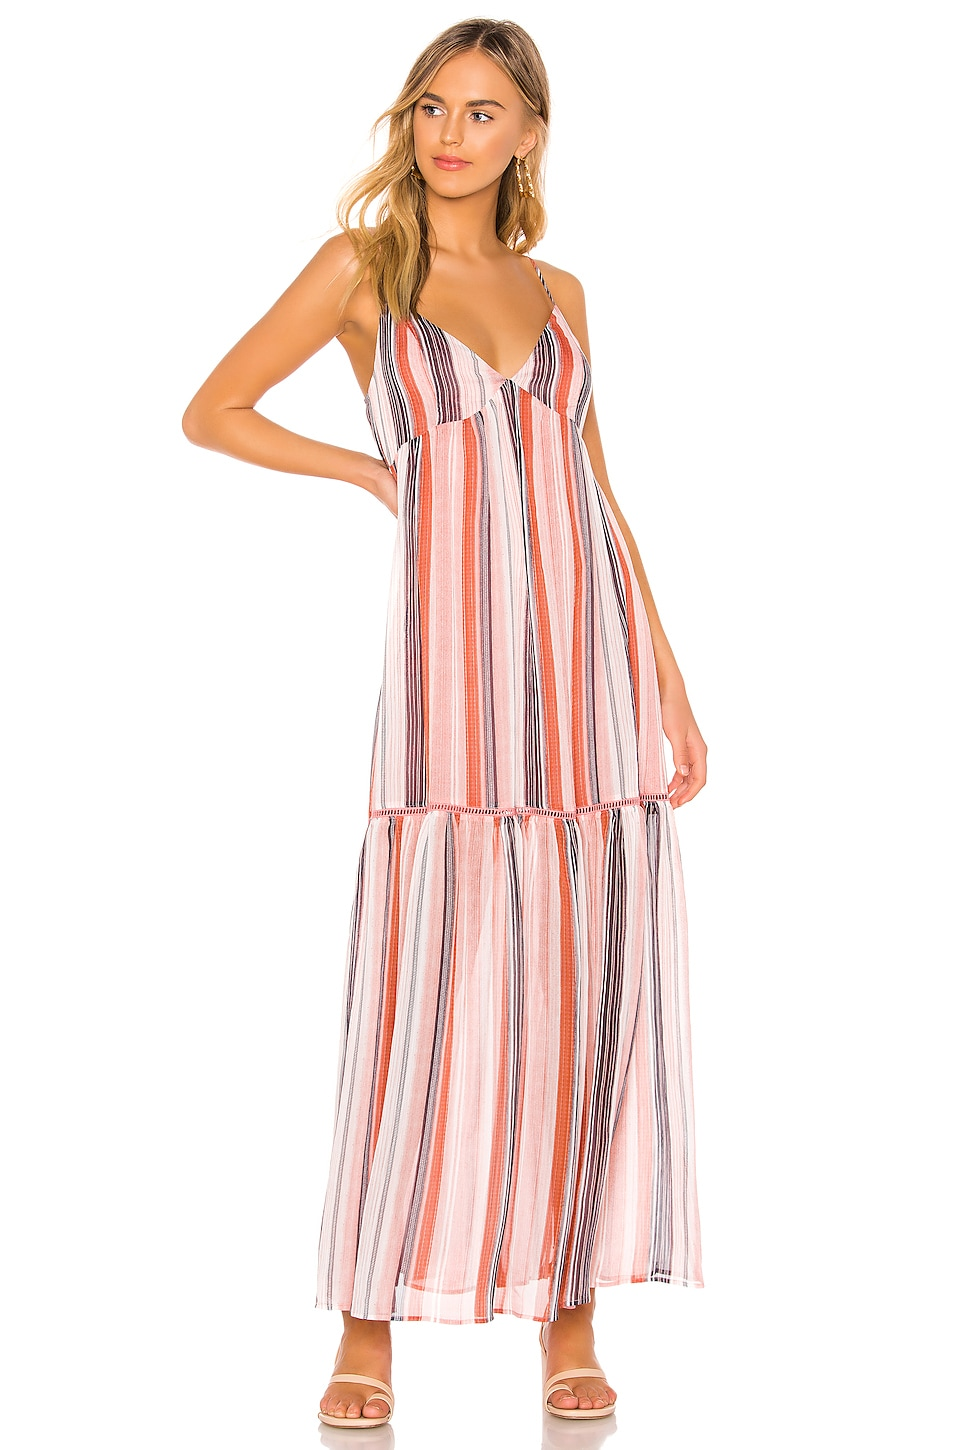 BB Dakota JACK by BB Dakota Sailors Delight Maxi Dress in Rose Dawn